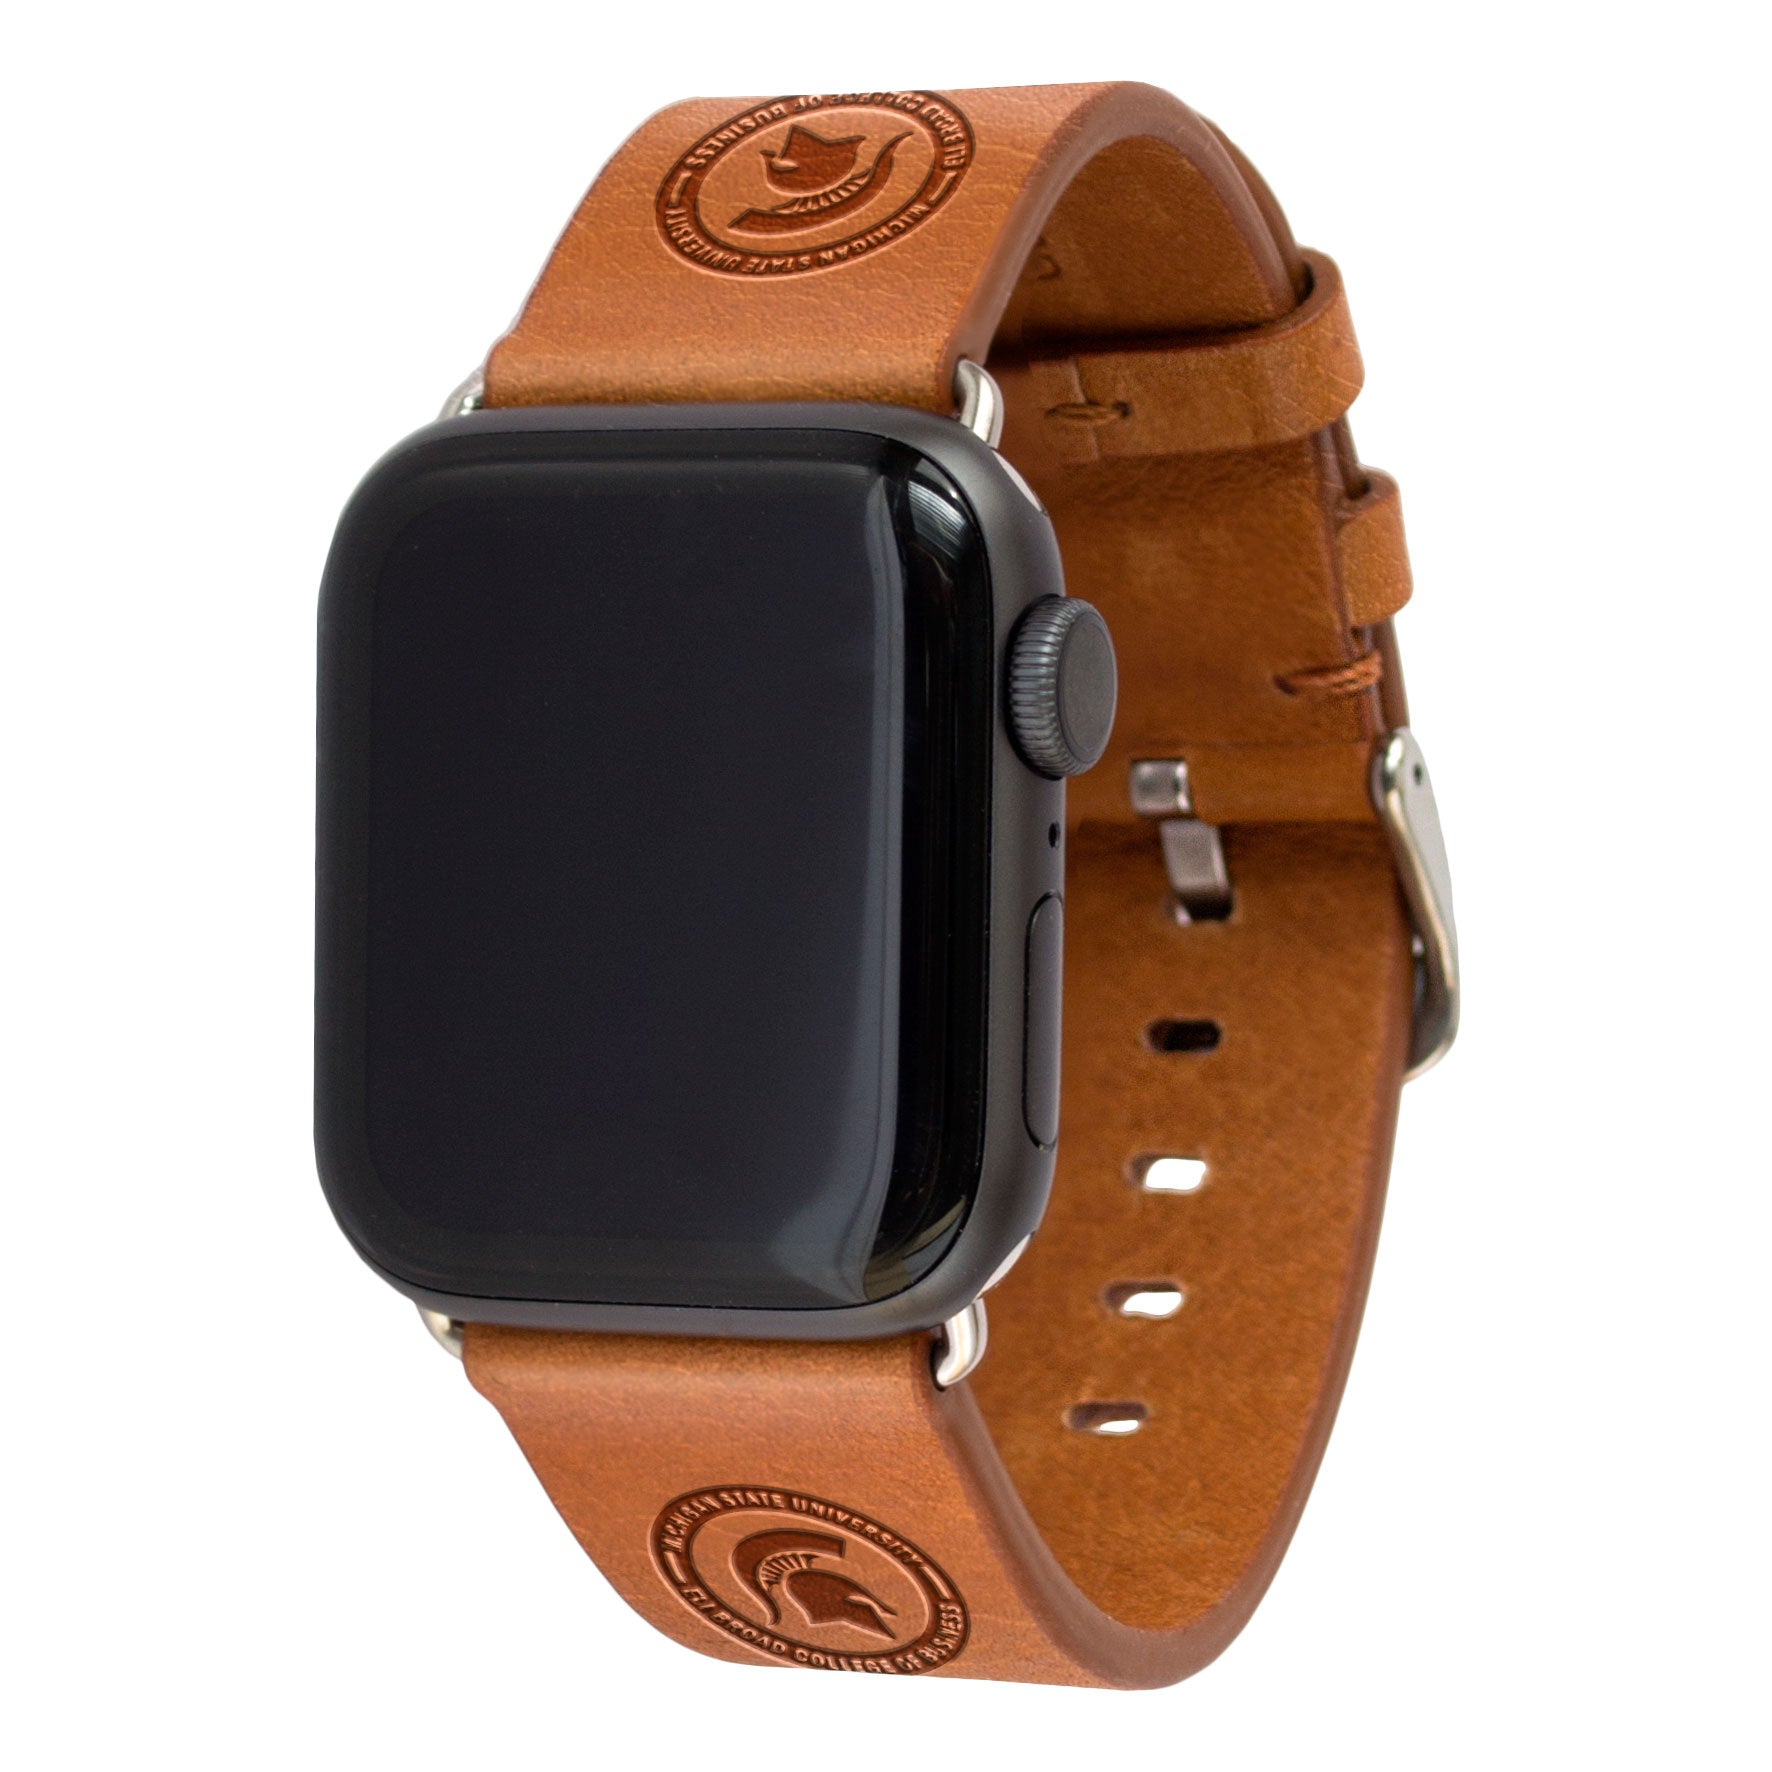 Eli Broad College of Business Leather Apple Watch Band